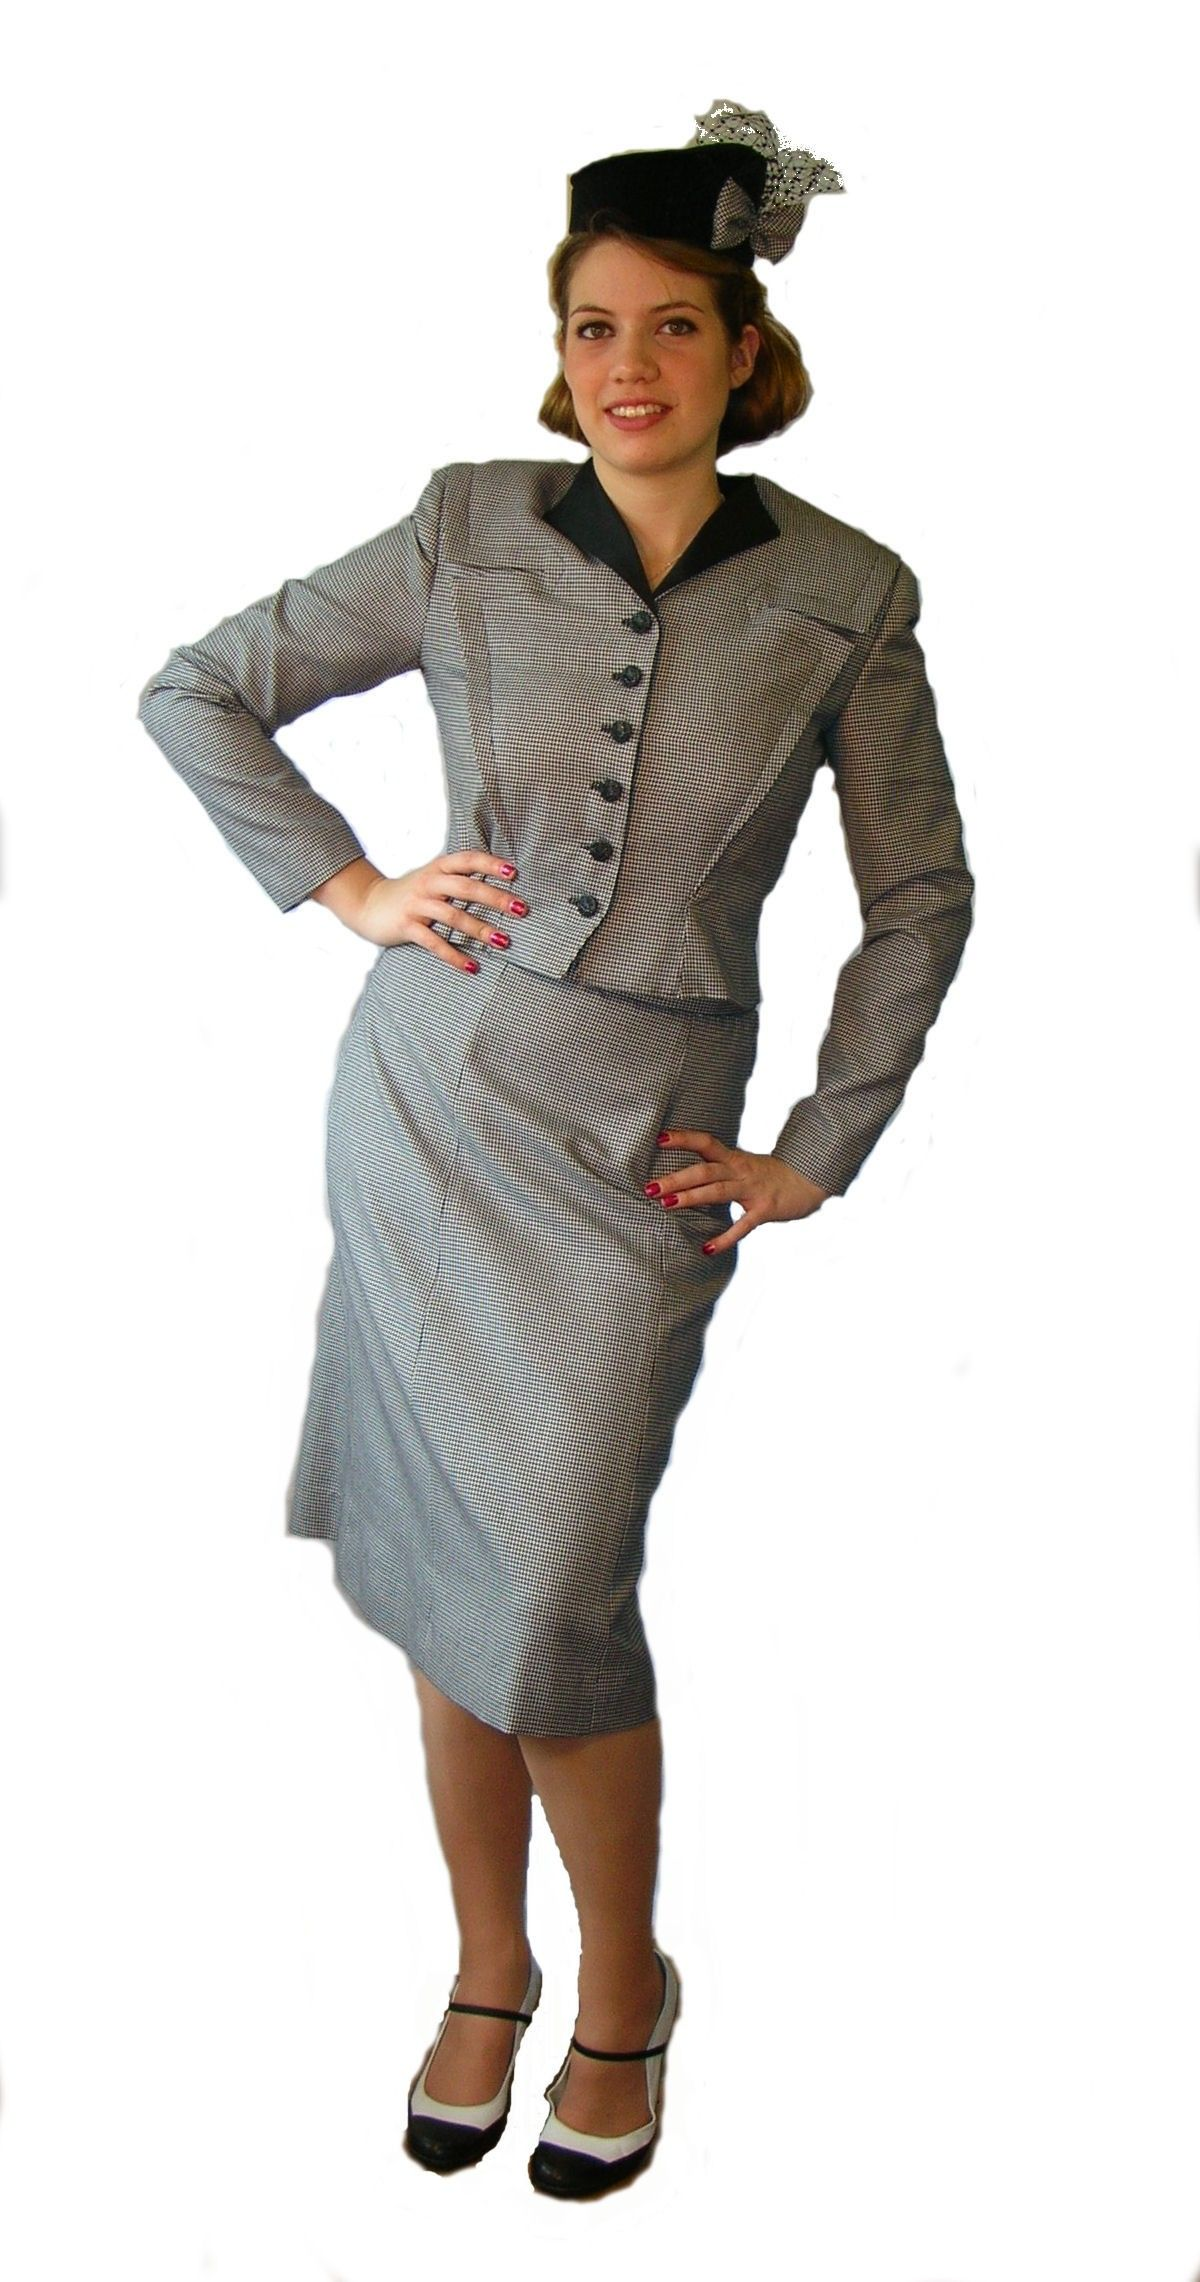 Ebony Ladies Dress Suits Double Click On Above Image To View Full Picture